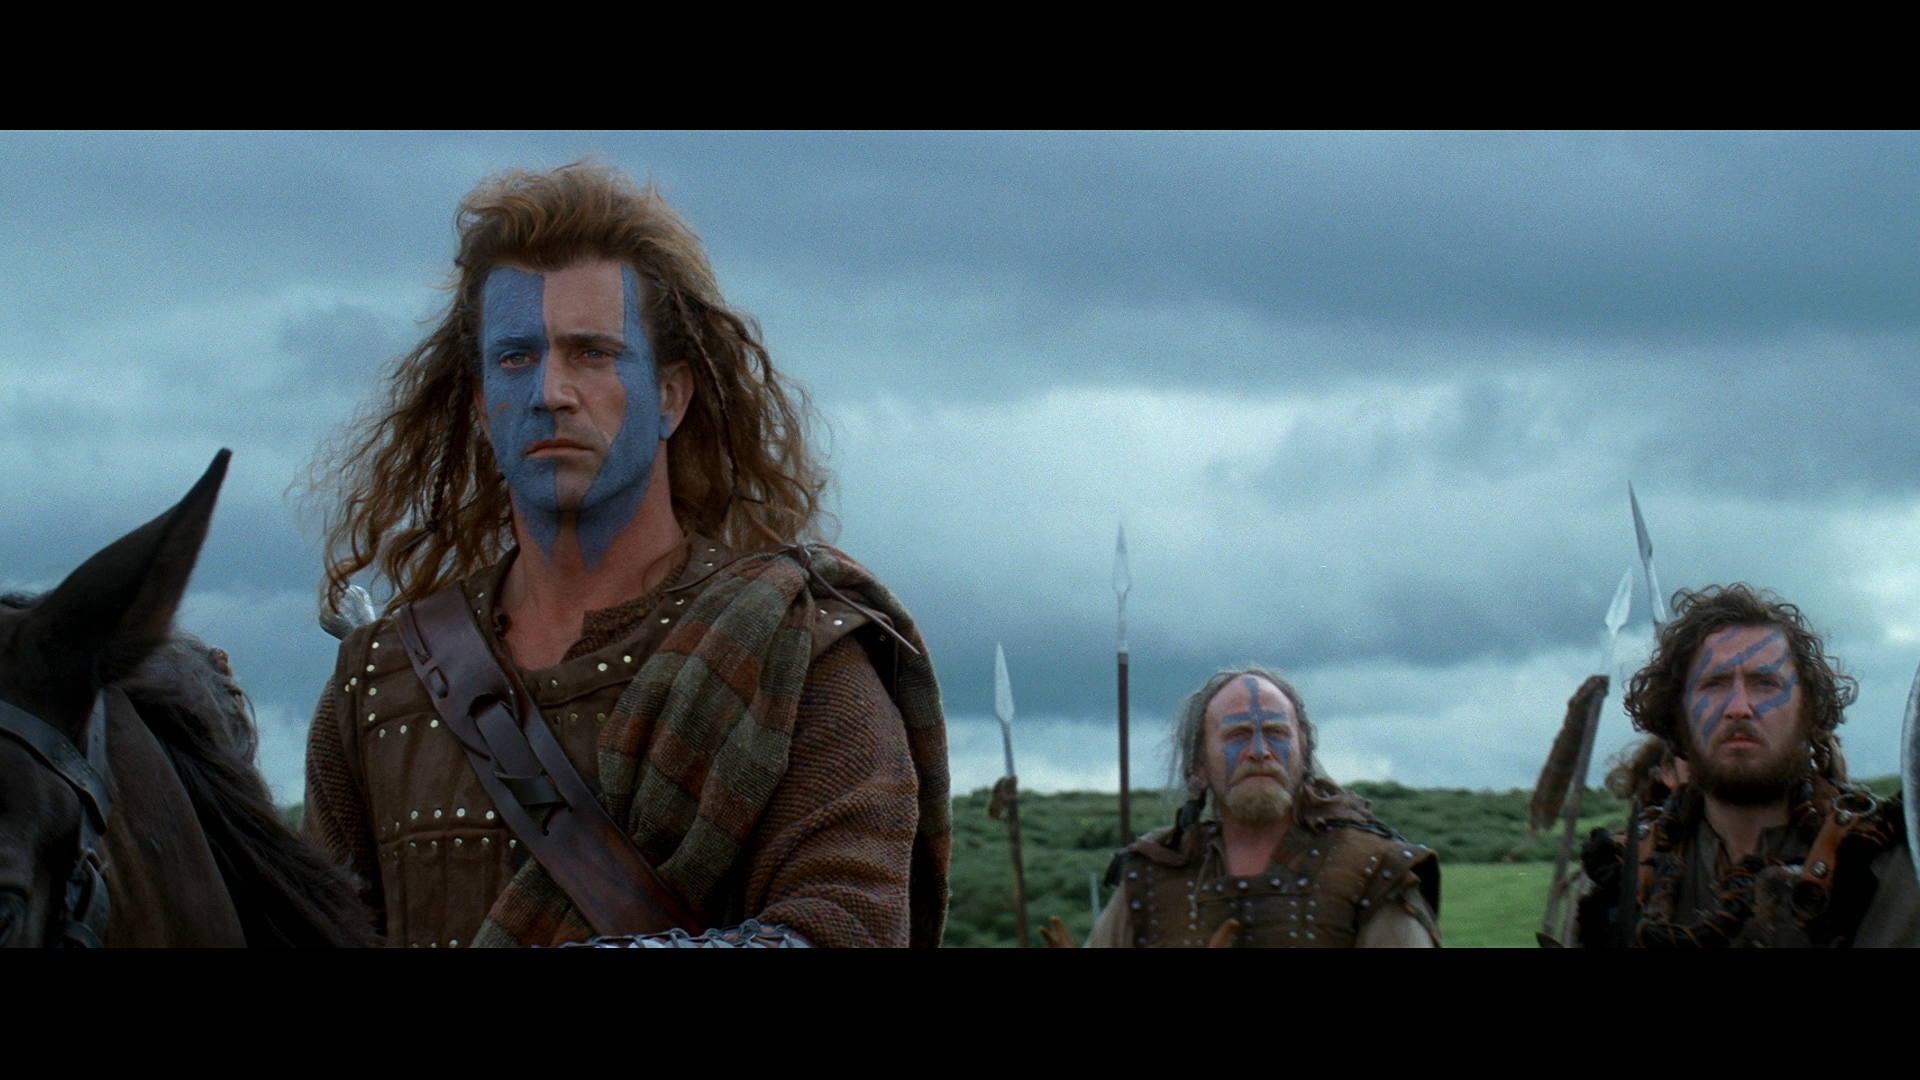 braveheart facebook cover - photo #3